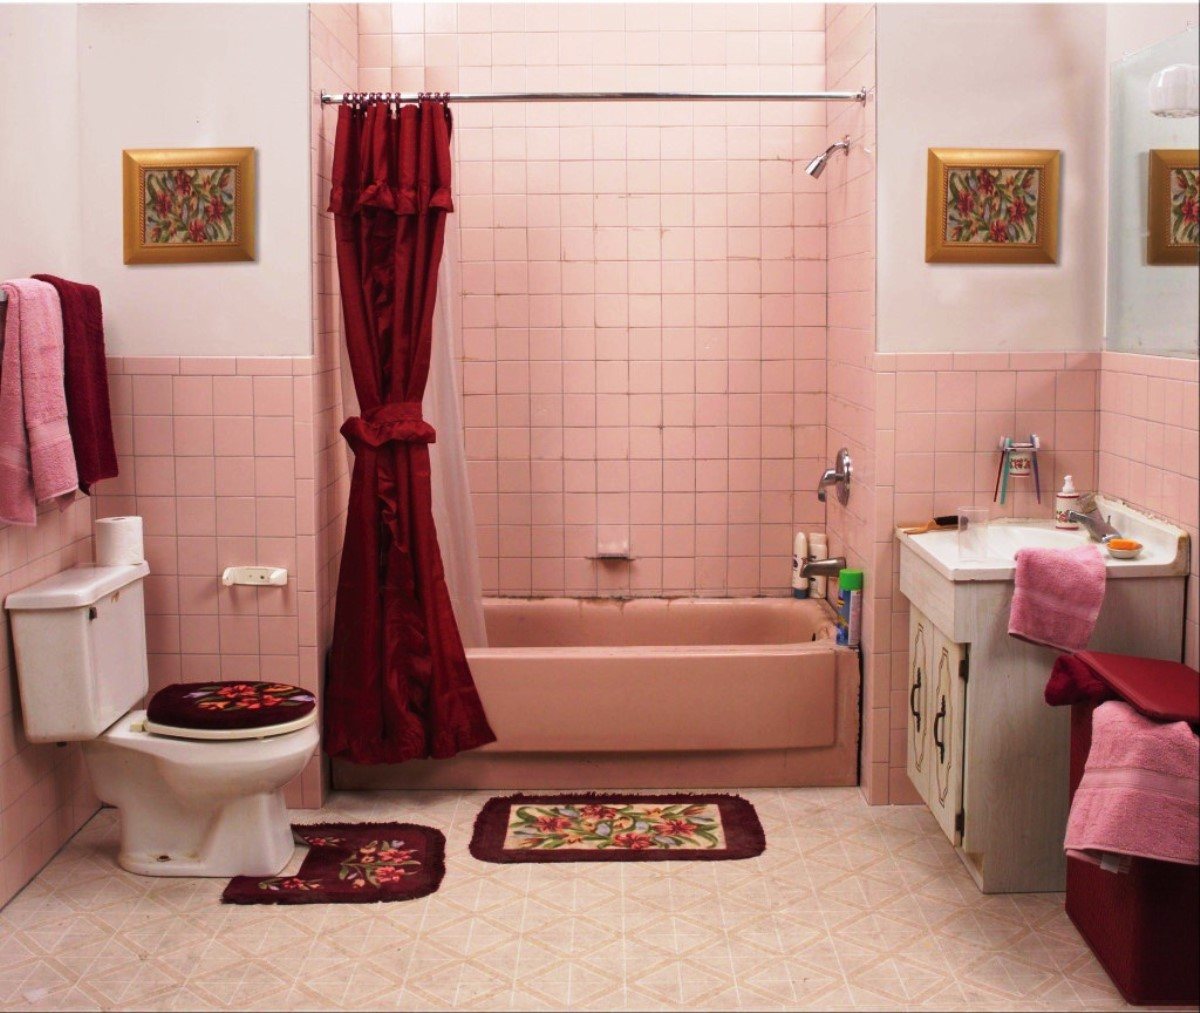 Cute Bathroom Ideas With Bathtub And Red Curtain Plus Toilet Vanity Units Beautified Picture